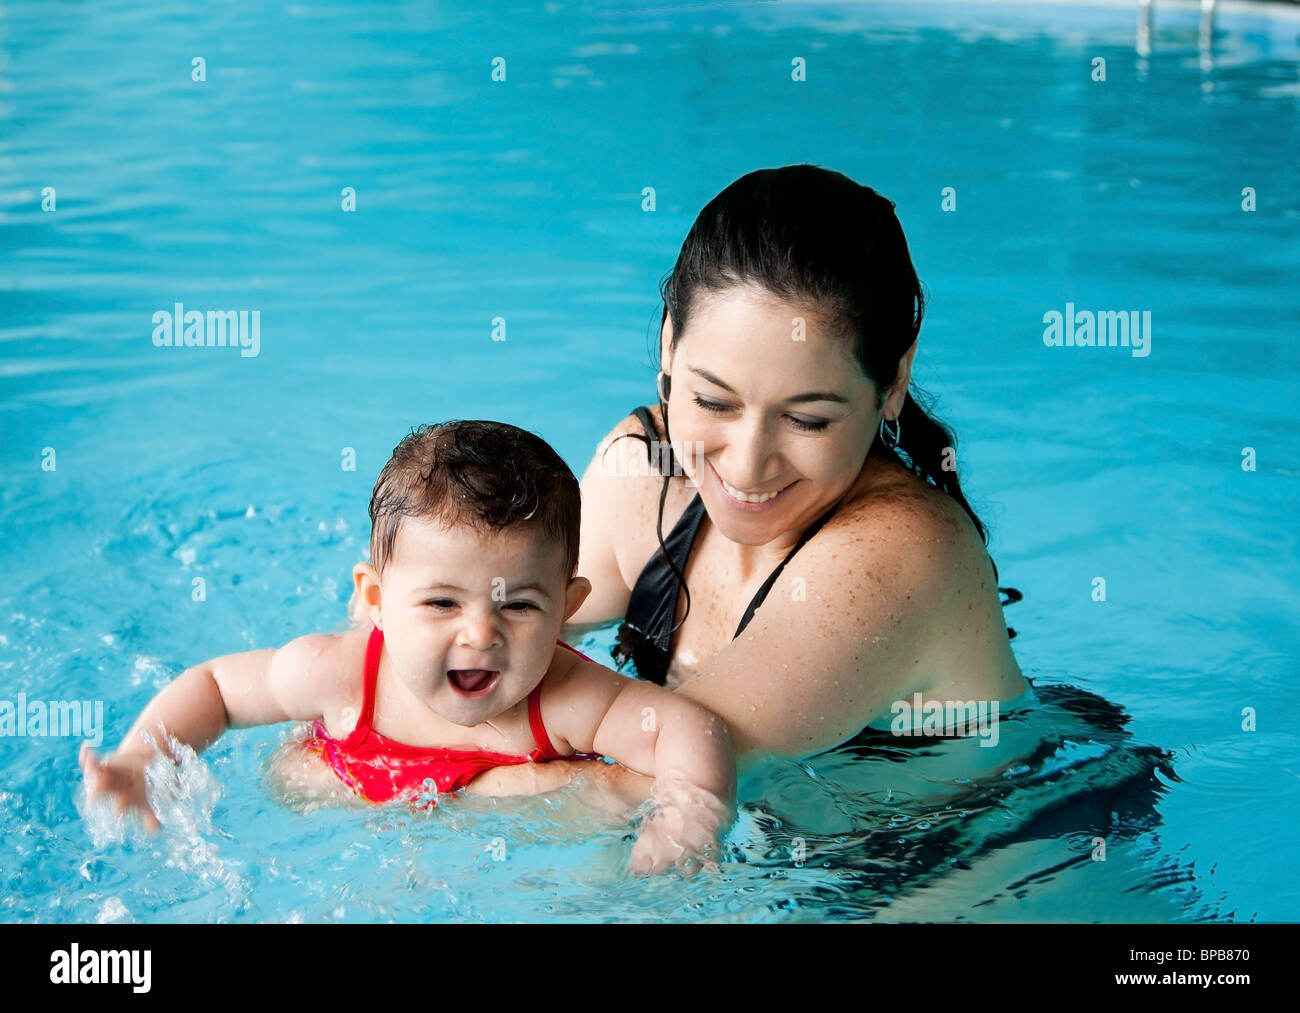 Beautiful mother teaching cute baby girl how to swim in a swimming pool. Child having fun in water with mom. - Stock Image